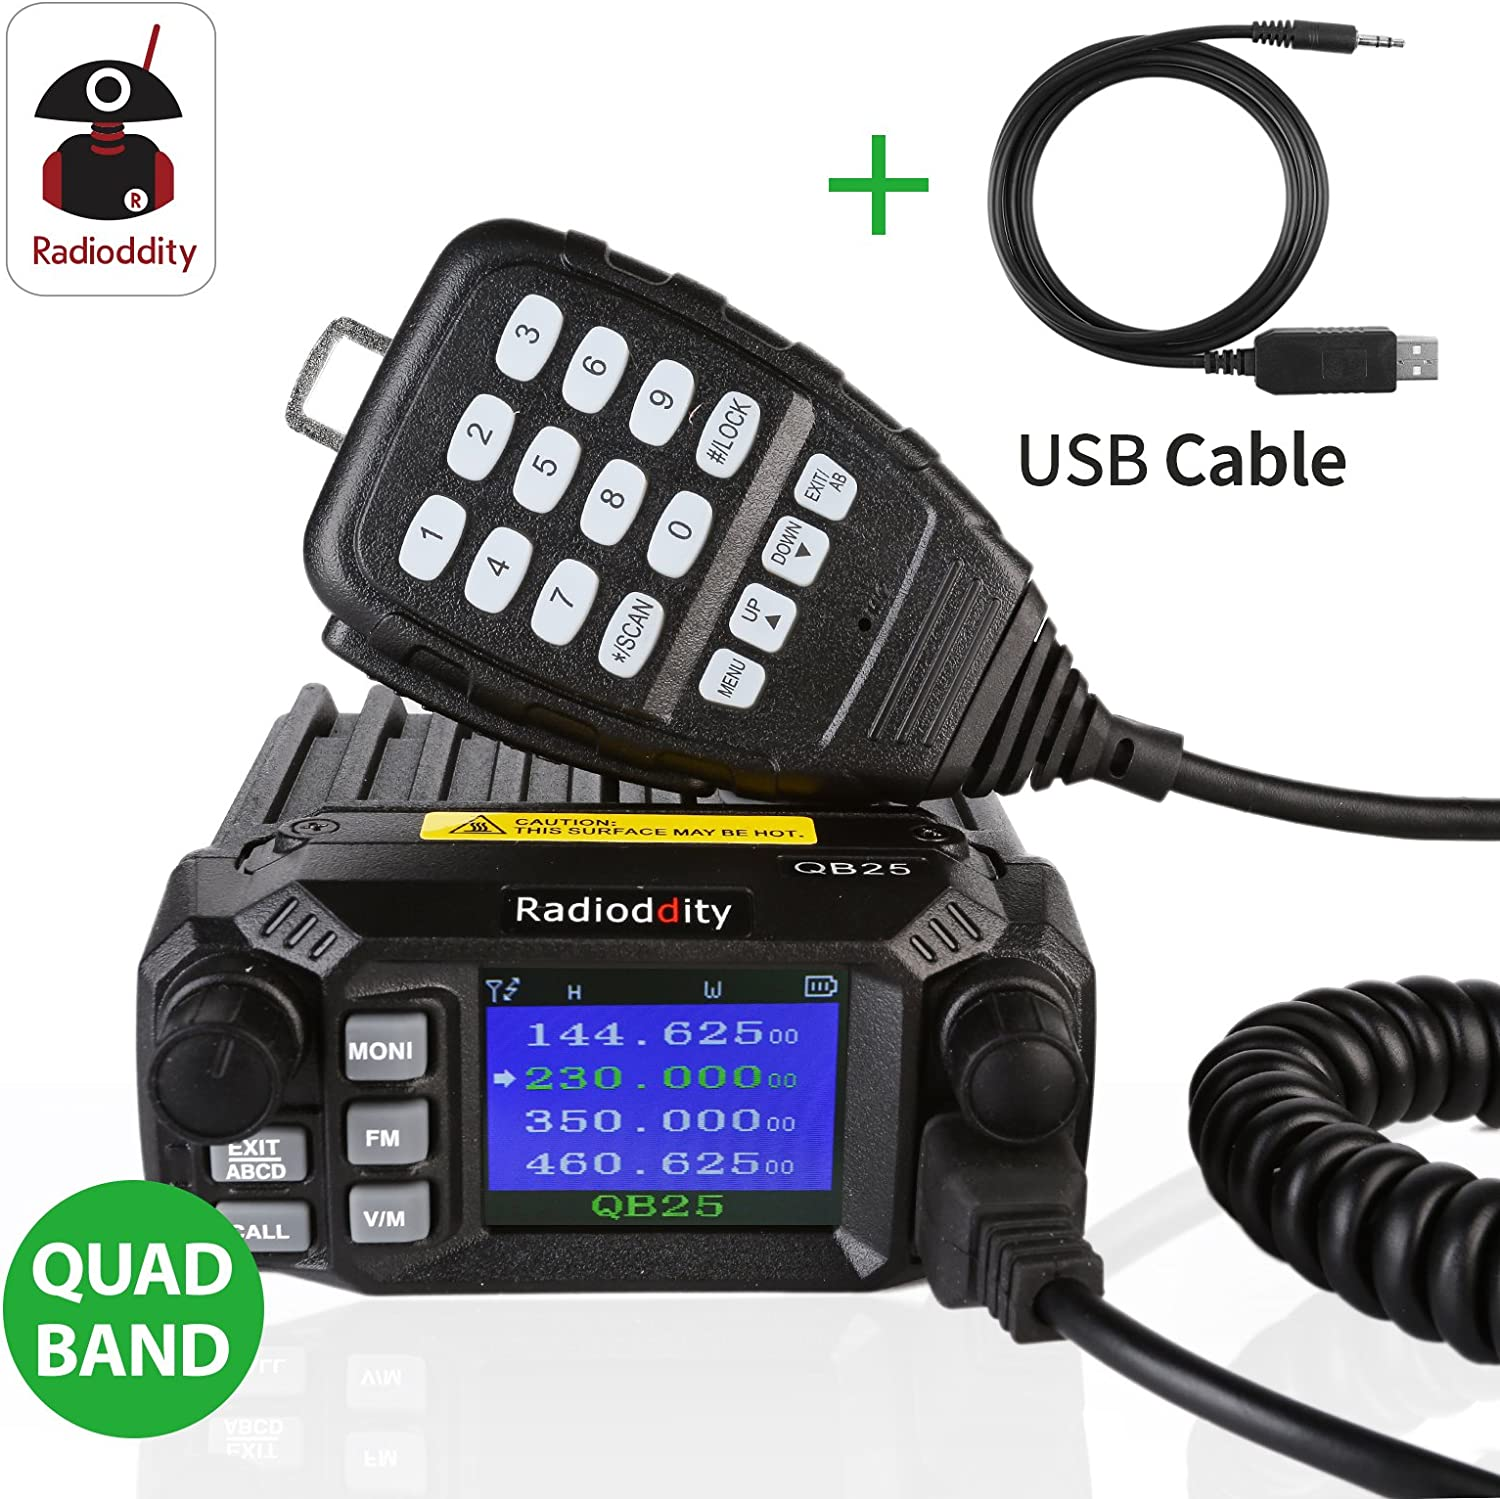 Radioddity QB25 Quad Band Quad-Standby Mini Mobile Car Truck Radio VHF UHF 25W 10W Car Transceiver with Programming Cable CD